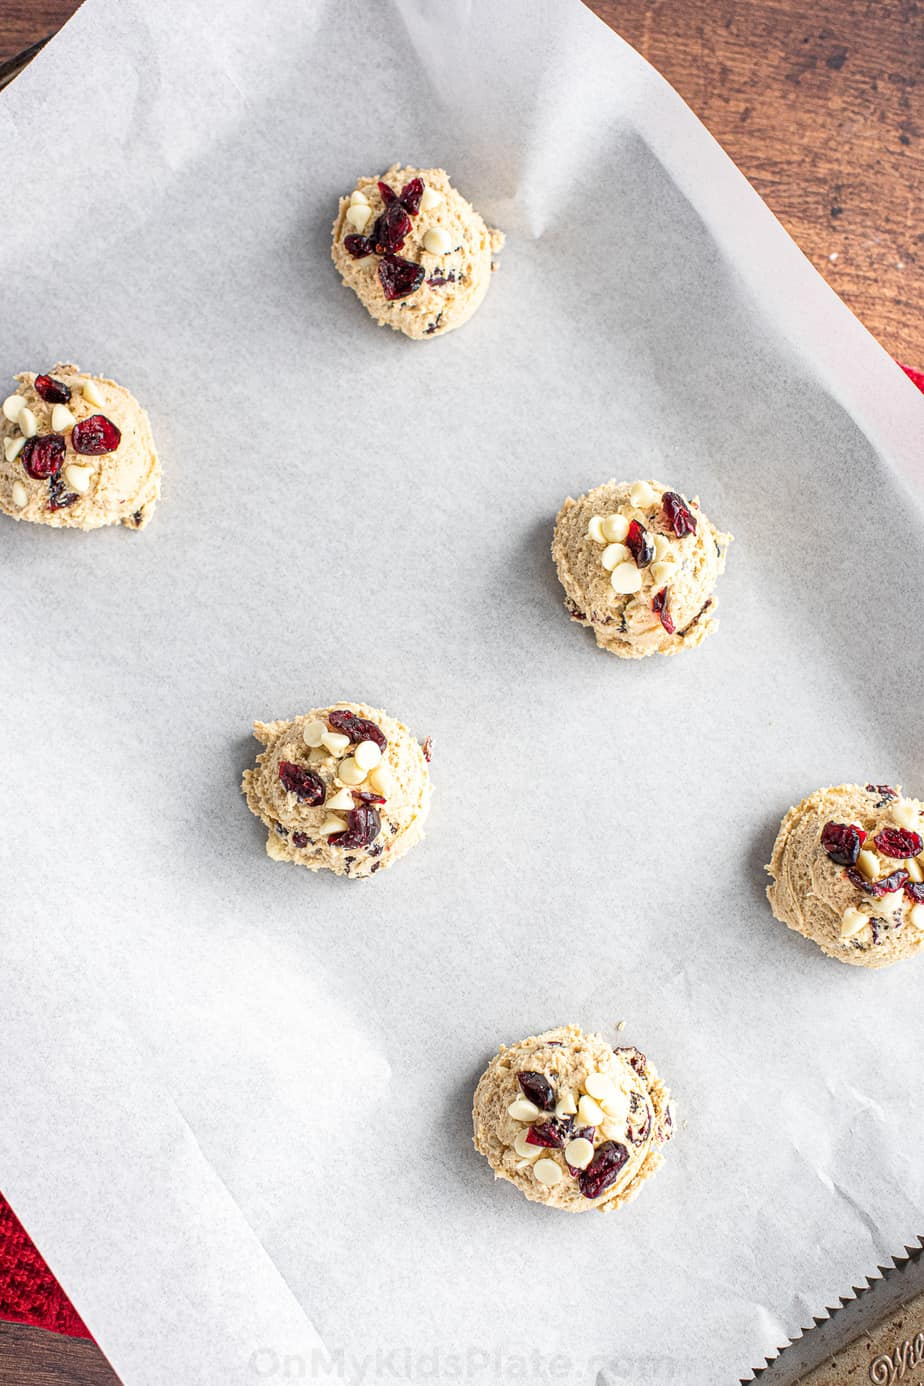 Raw cookie dough full of dried cranberries and white chocolate chips on a parchment lined baking pan zoomed in and tilted to the side.